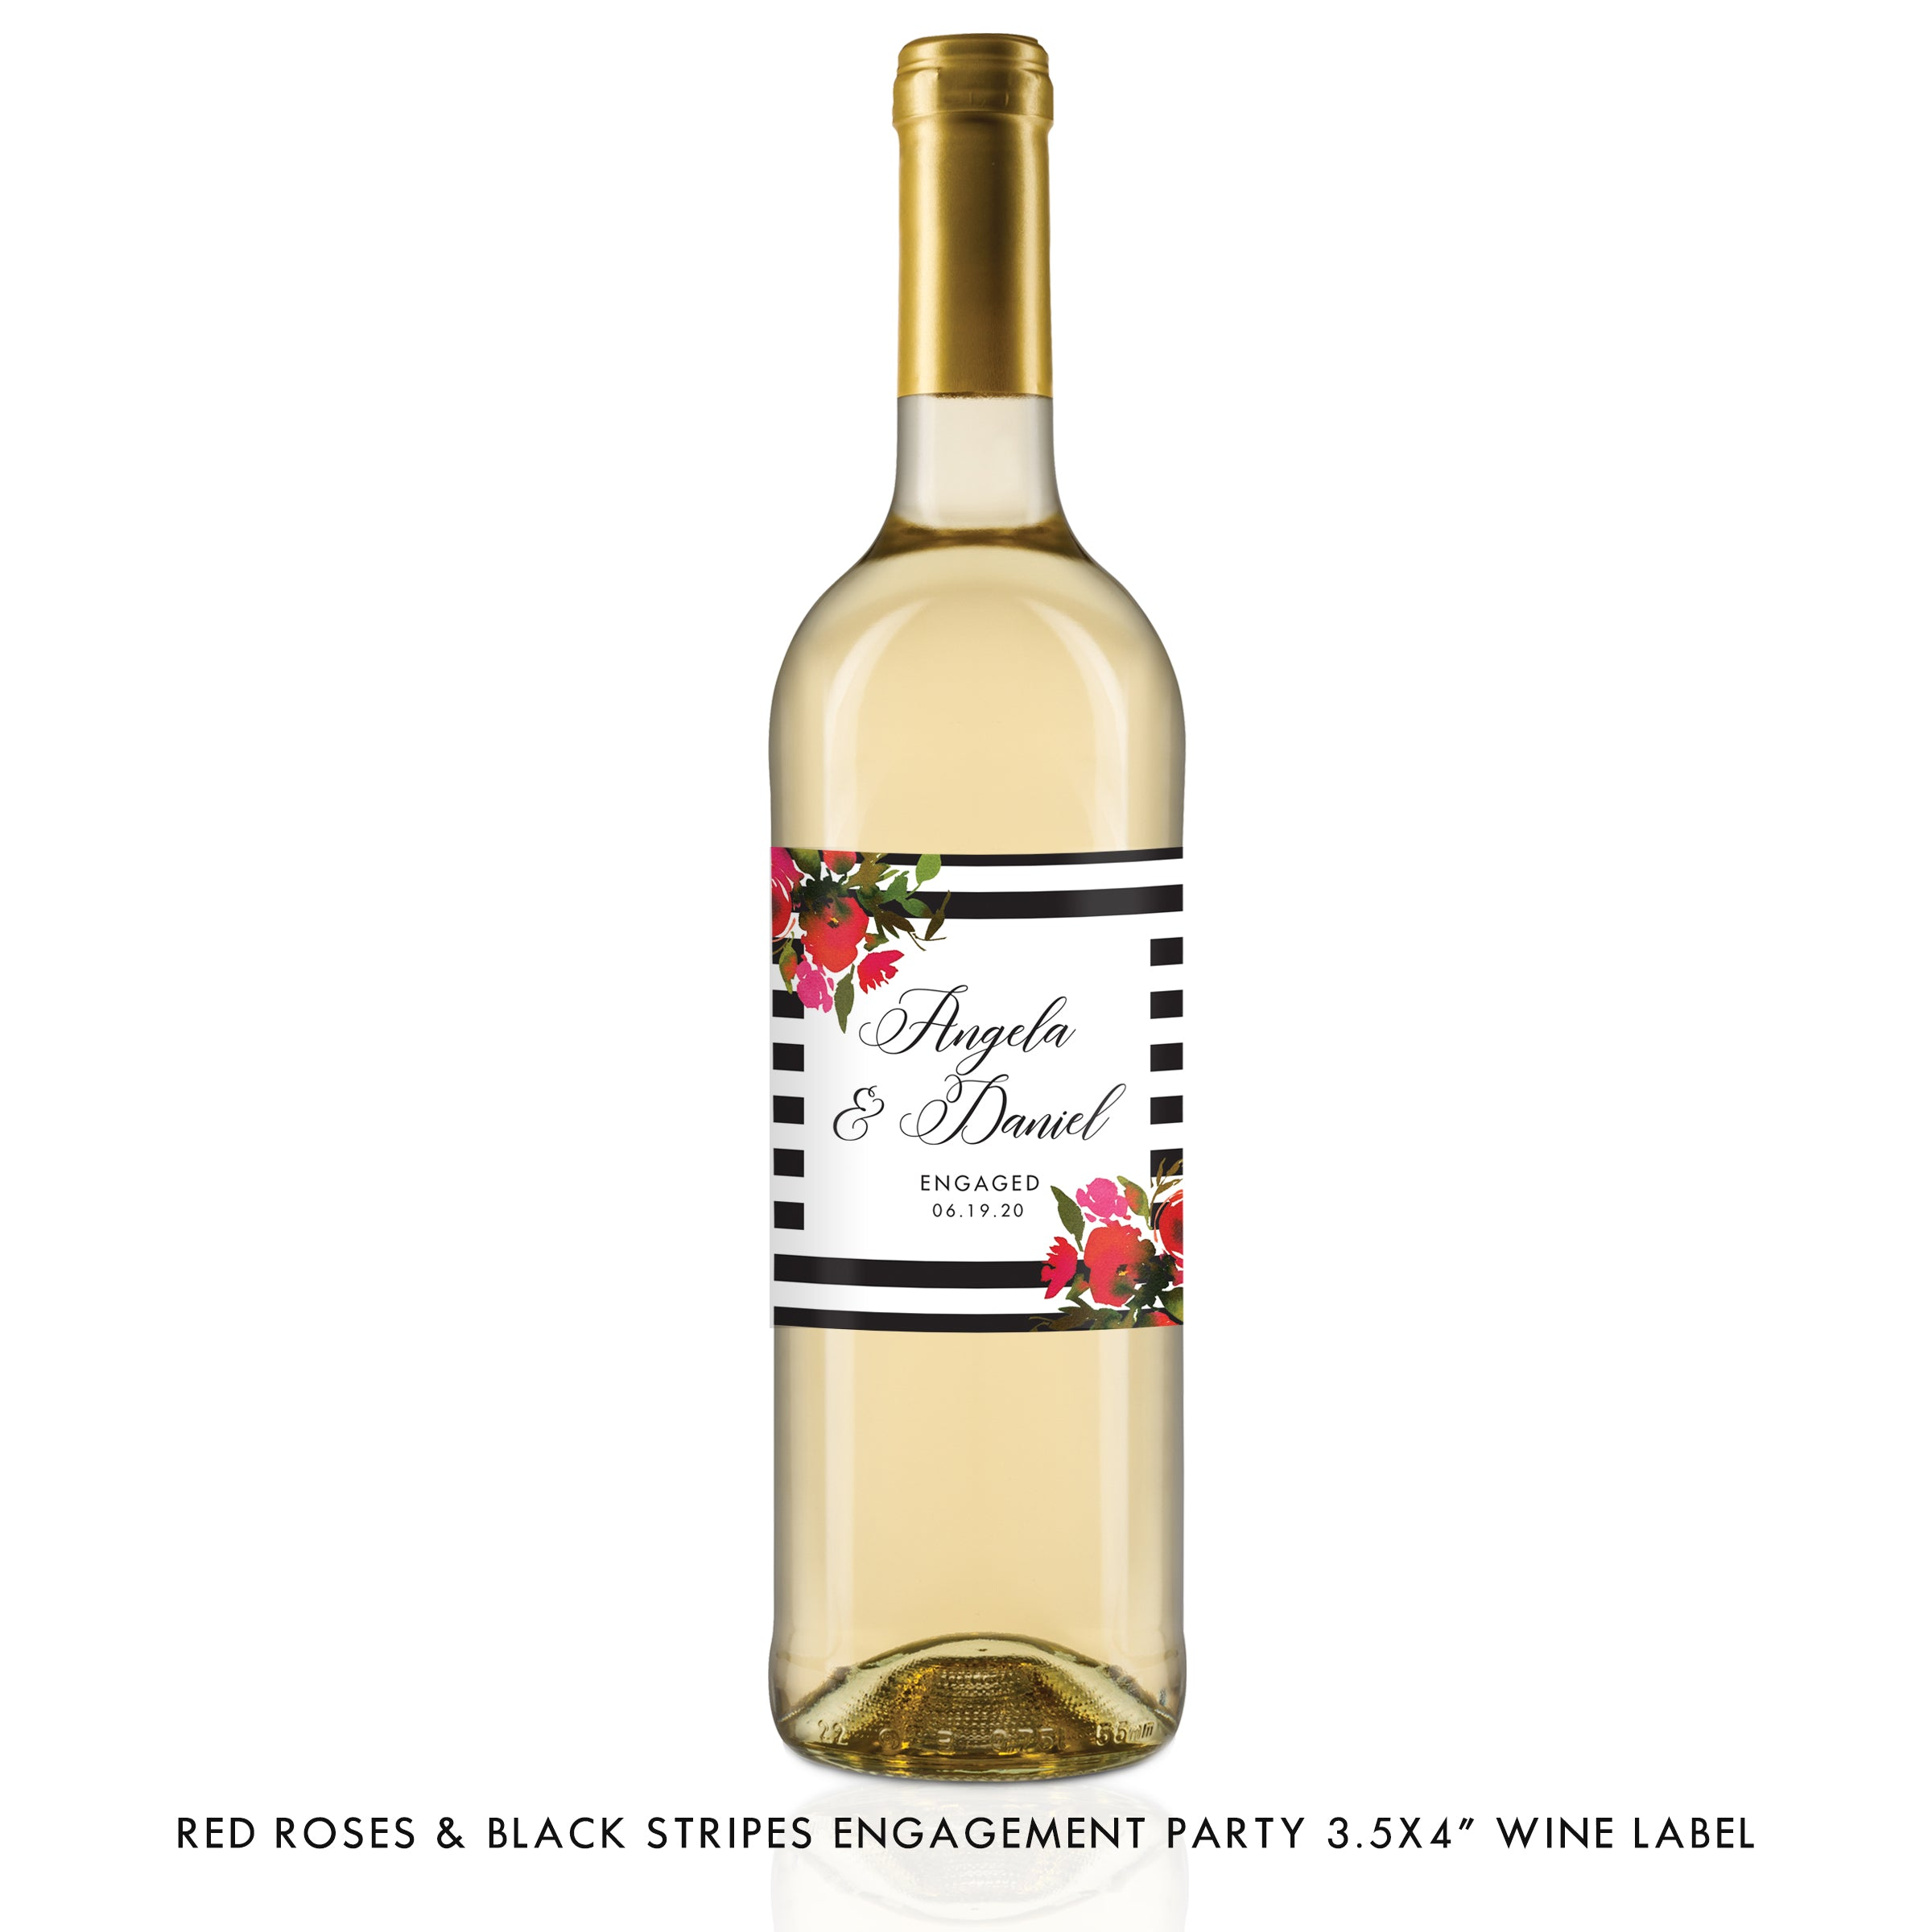 Red Roses & Black Stripes Engagement Wine Labels Coll. 1B